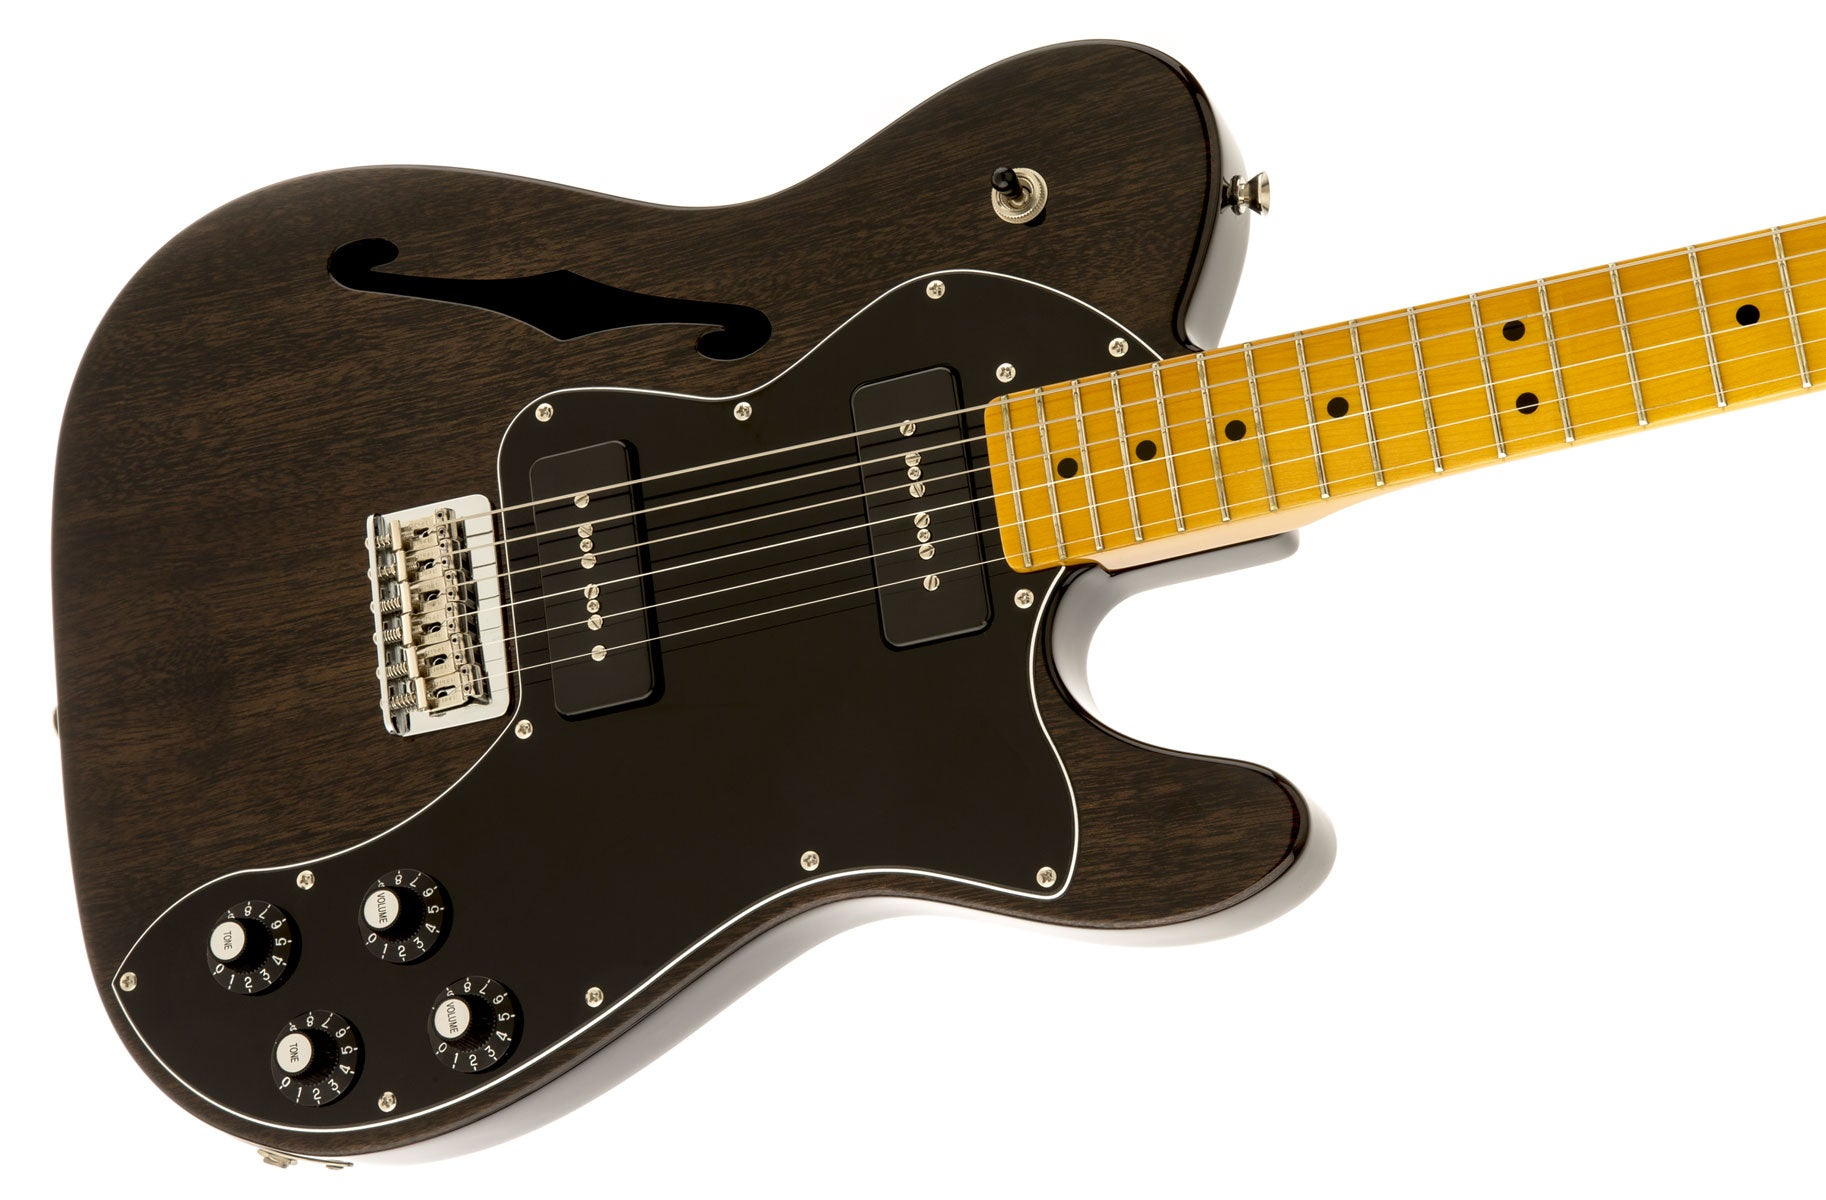 Fender Modern Player Telecaster Thinline Deluxe Found Sound